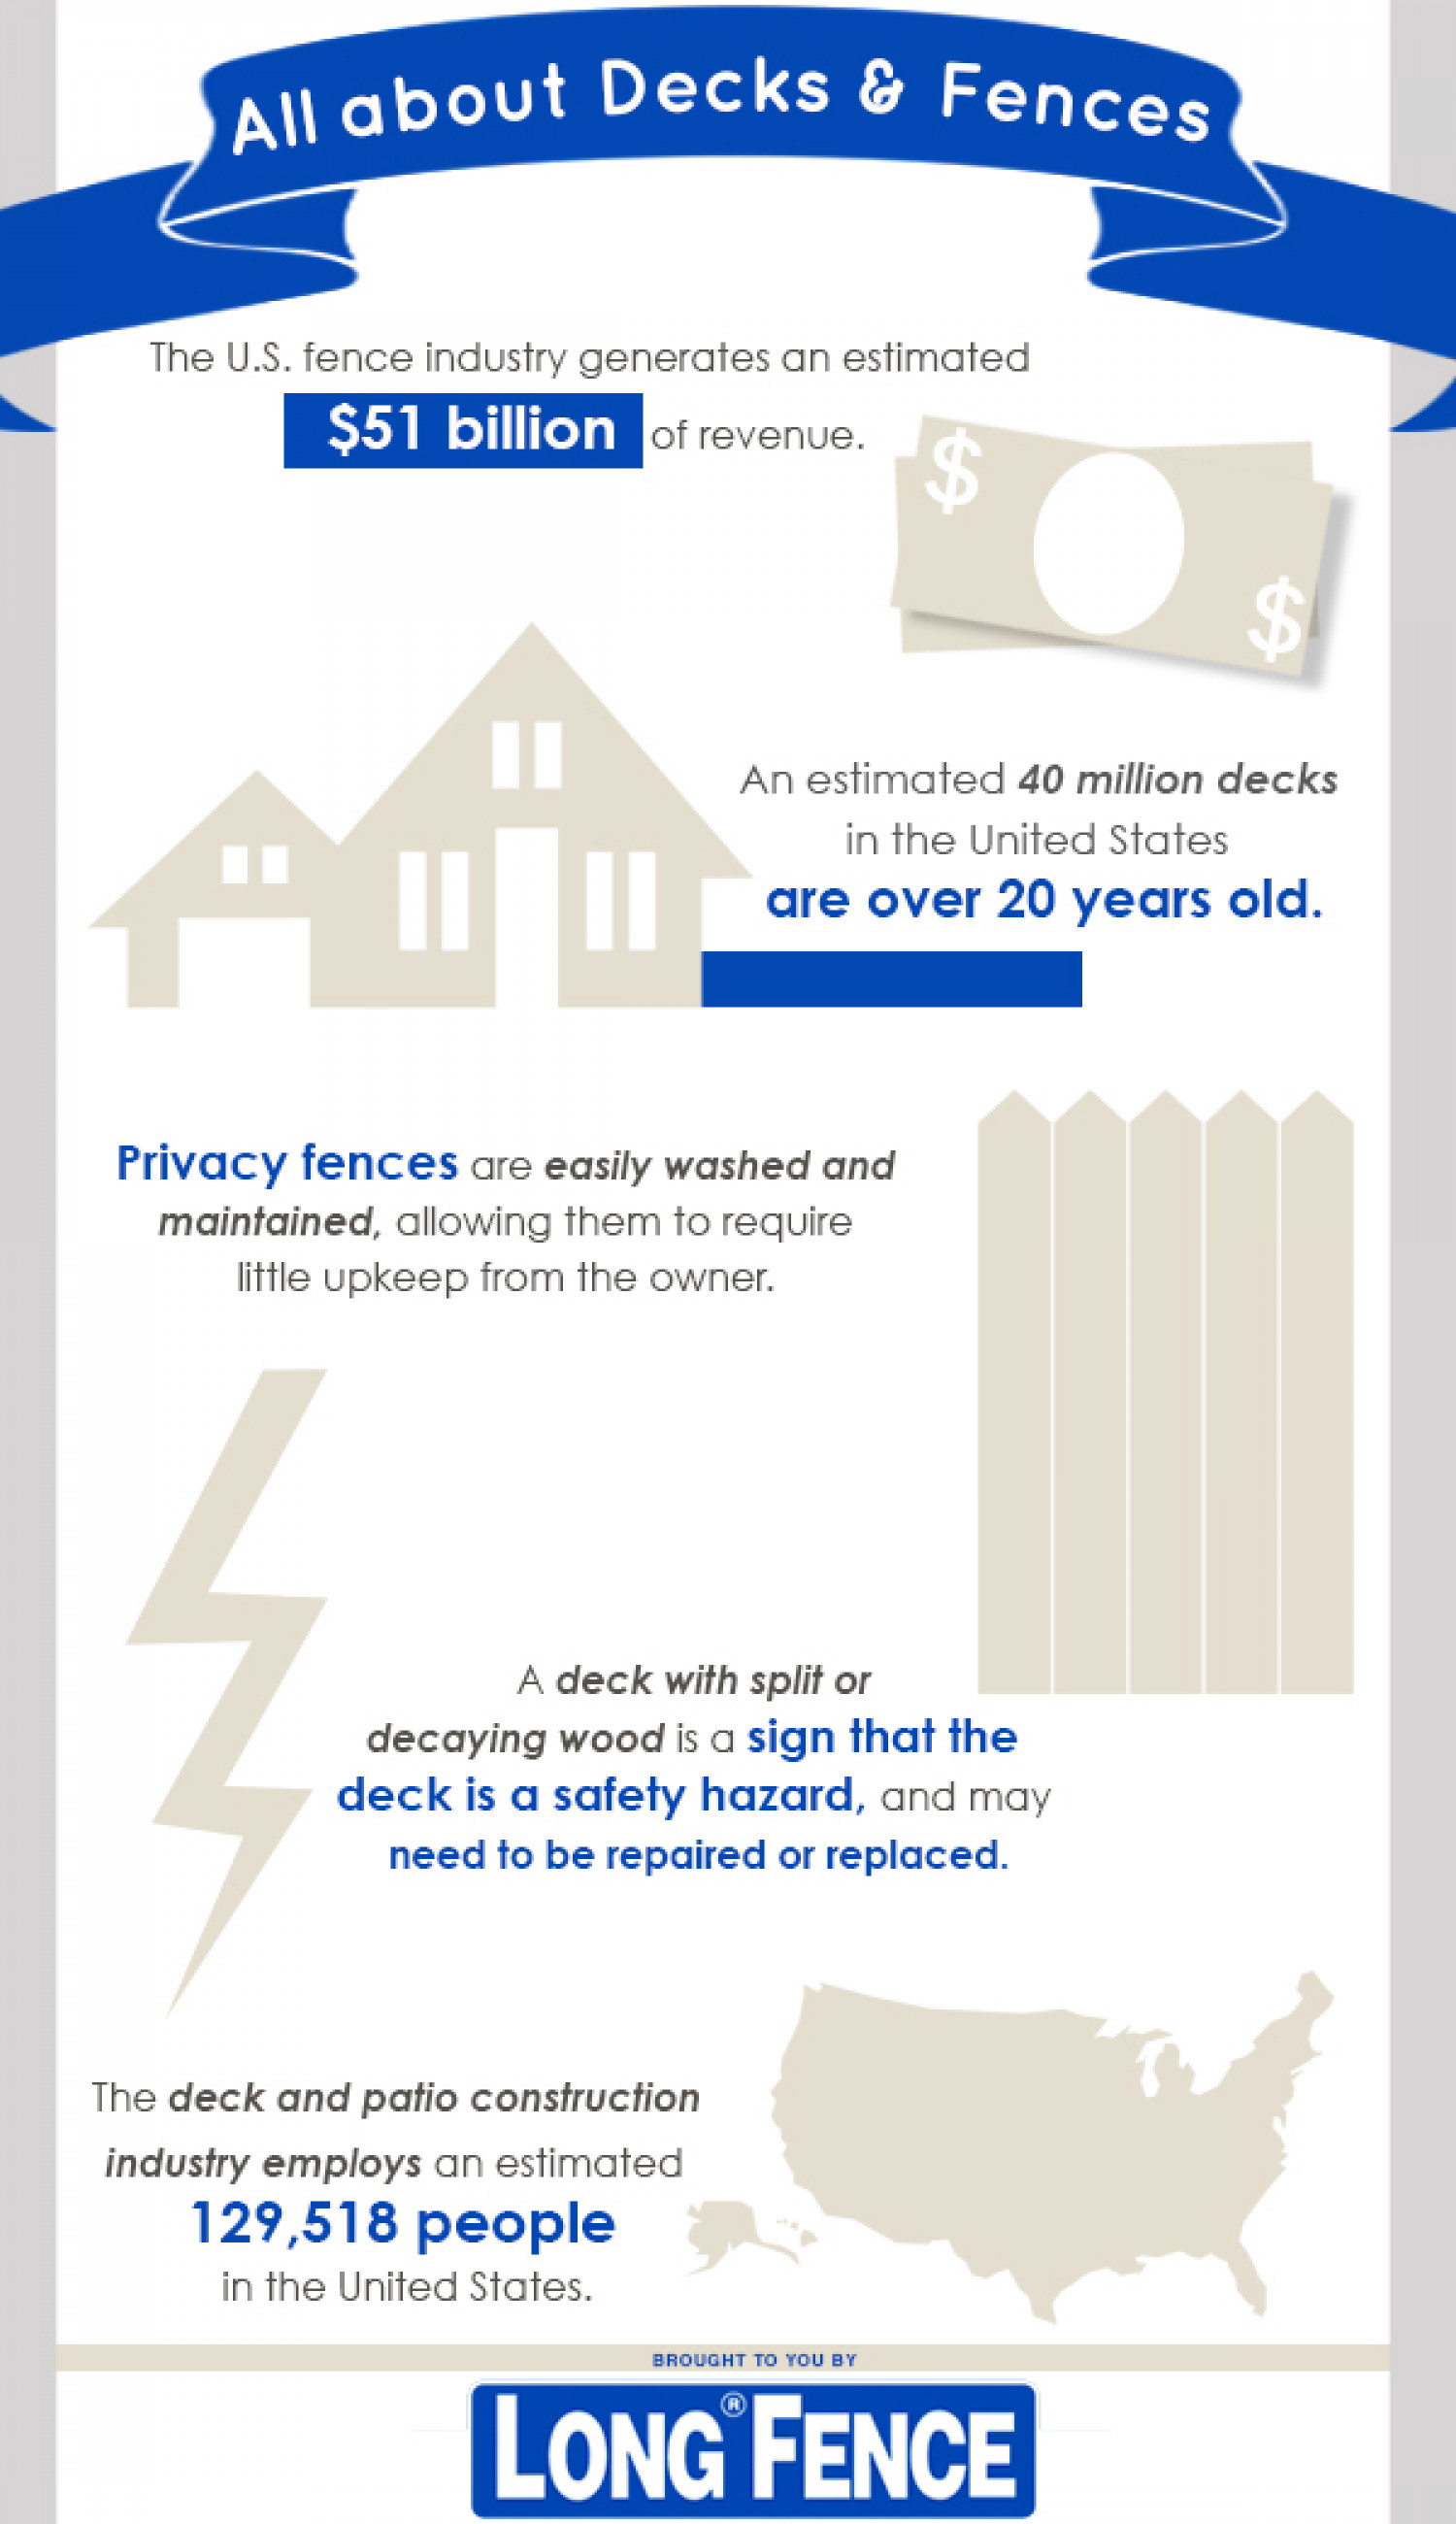 All About Decks & Fences Infographic